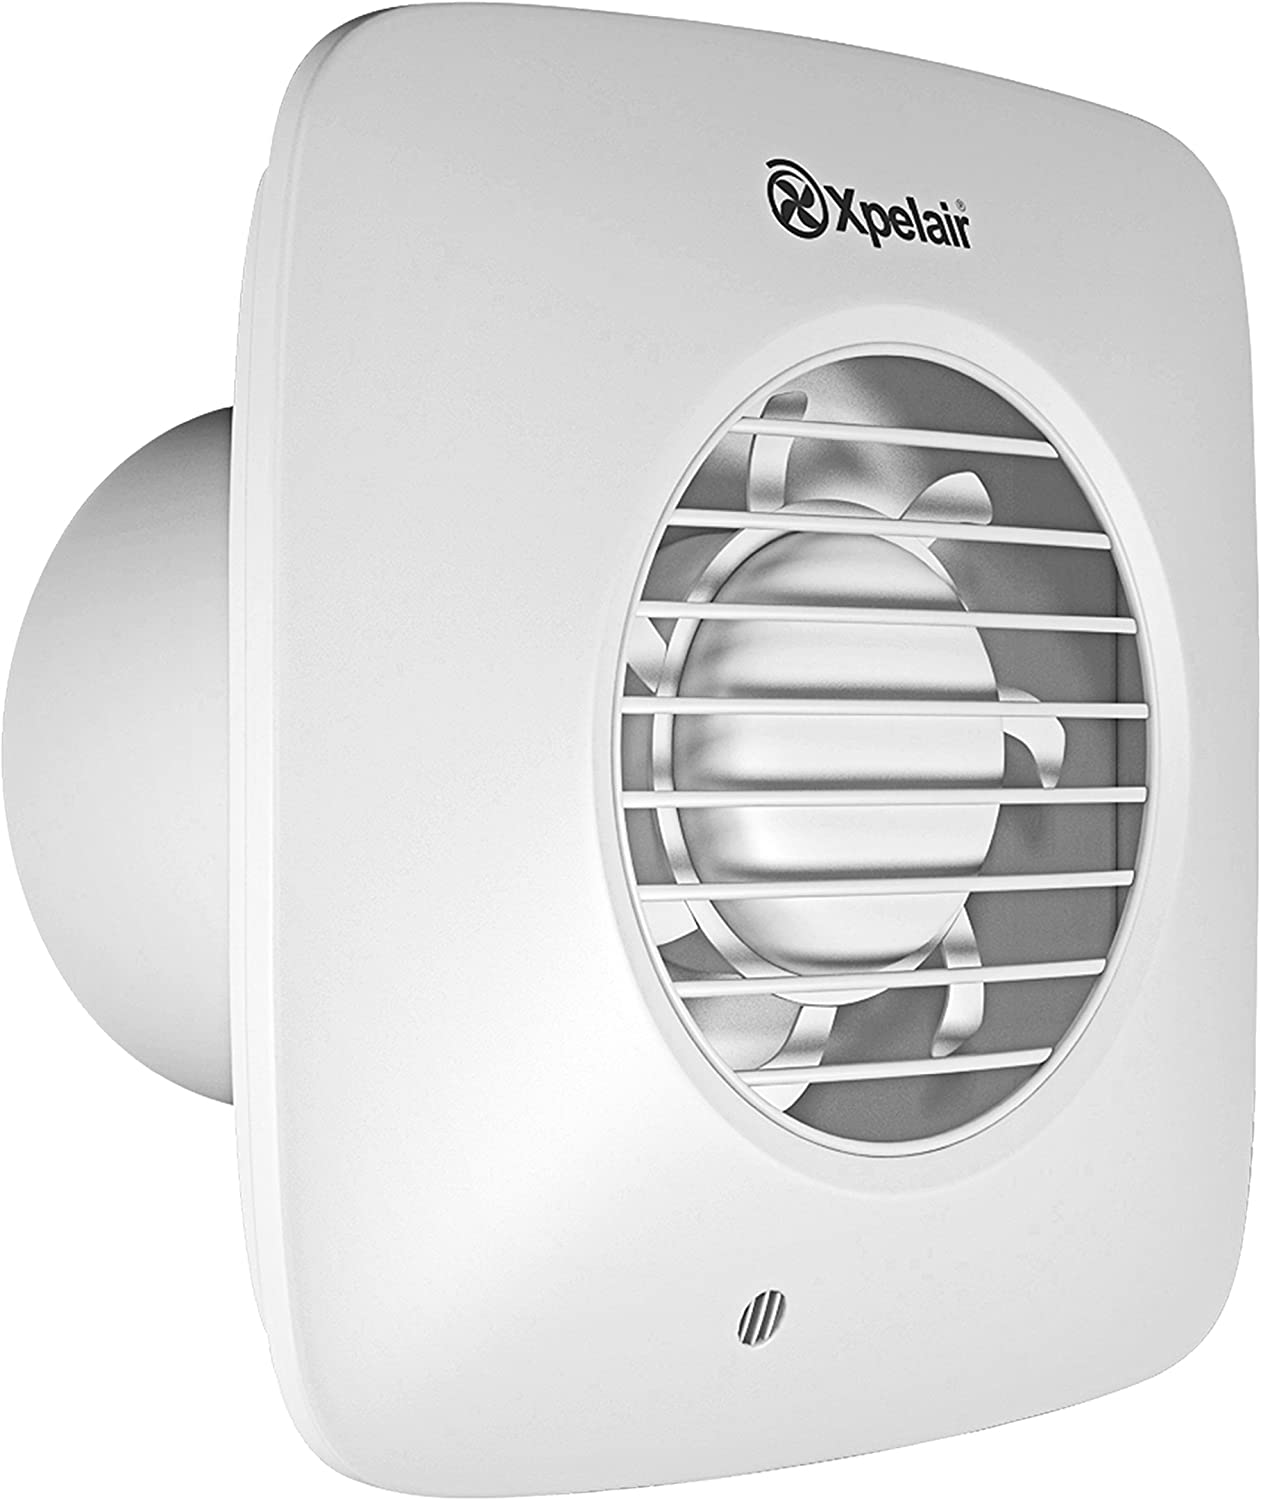 Xpelair DX100BTS 4 inch (100mm) Simply Silent DX100B Bathroom Fan-Timer Square, Cool White